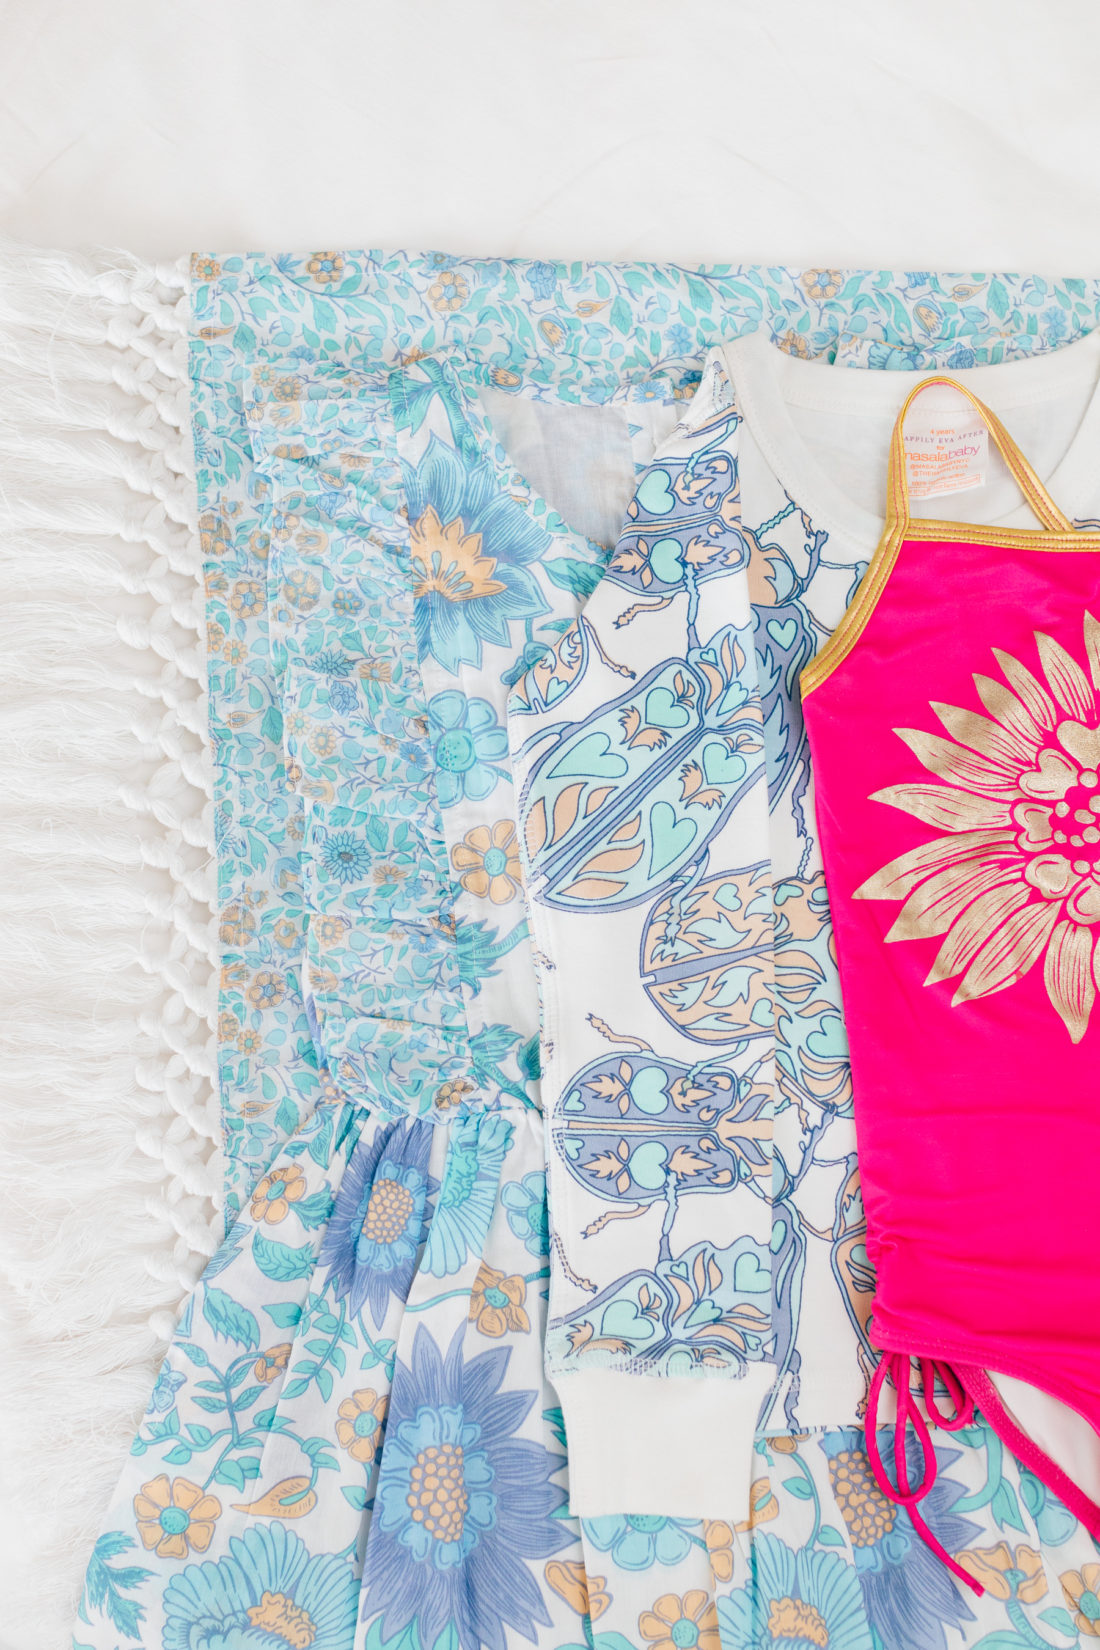 The Happily Eva After x Masala Baby resort capsule collection is layed out on a white background with an array of patterns in blue tones and a pop of color in the bright fuschia bathing suit